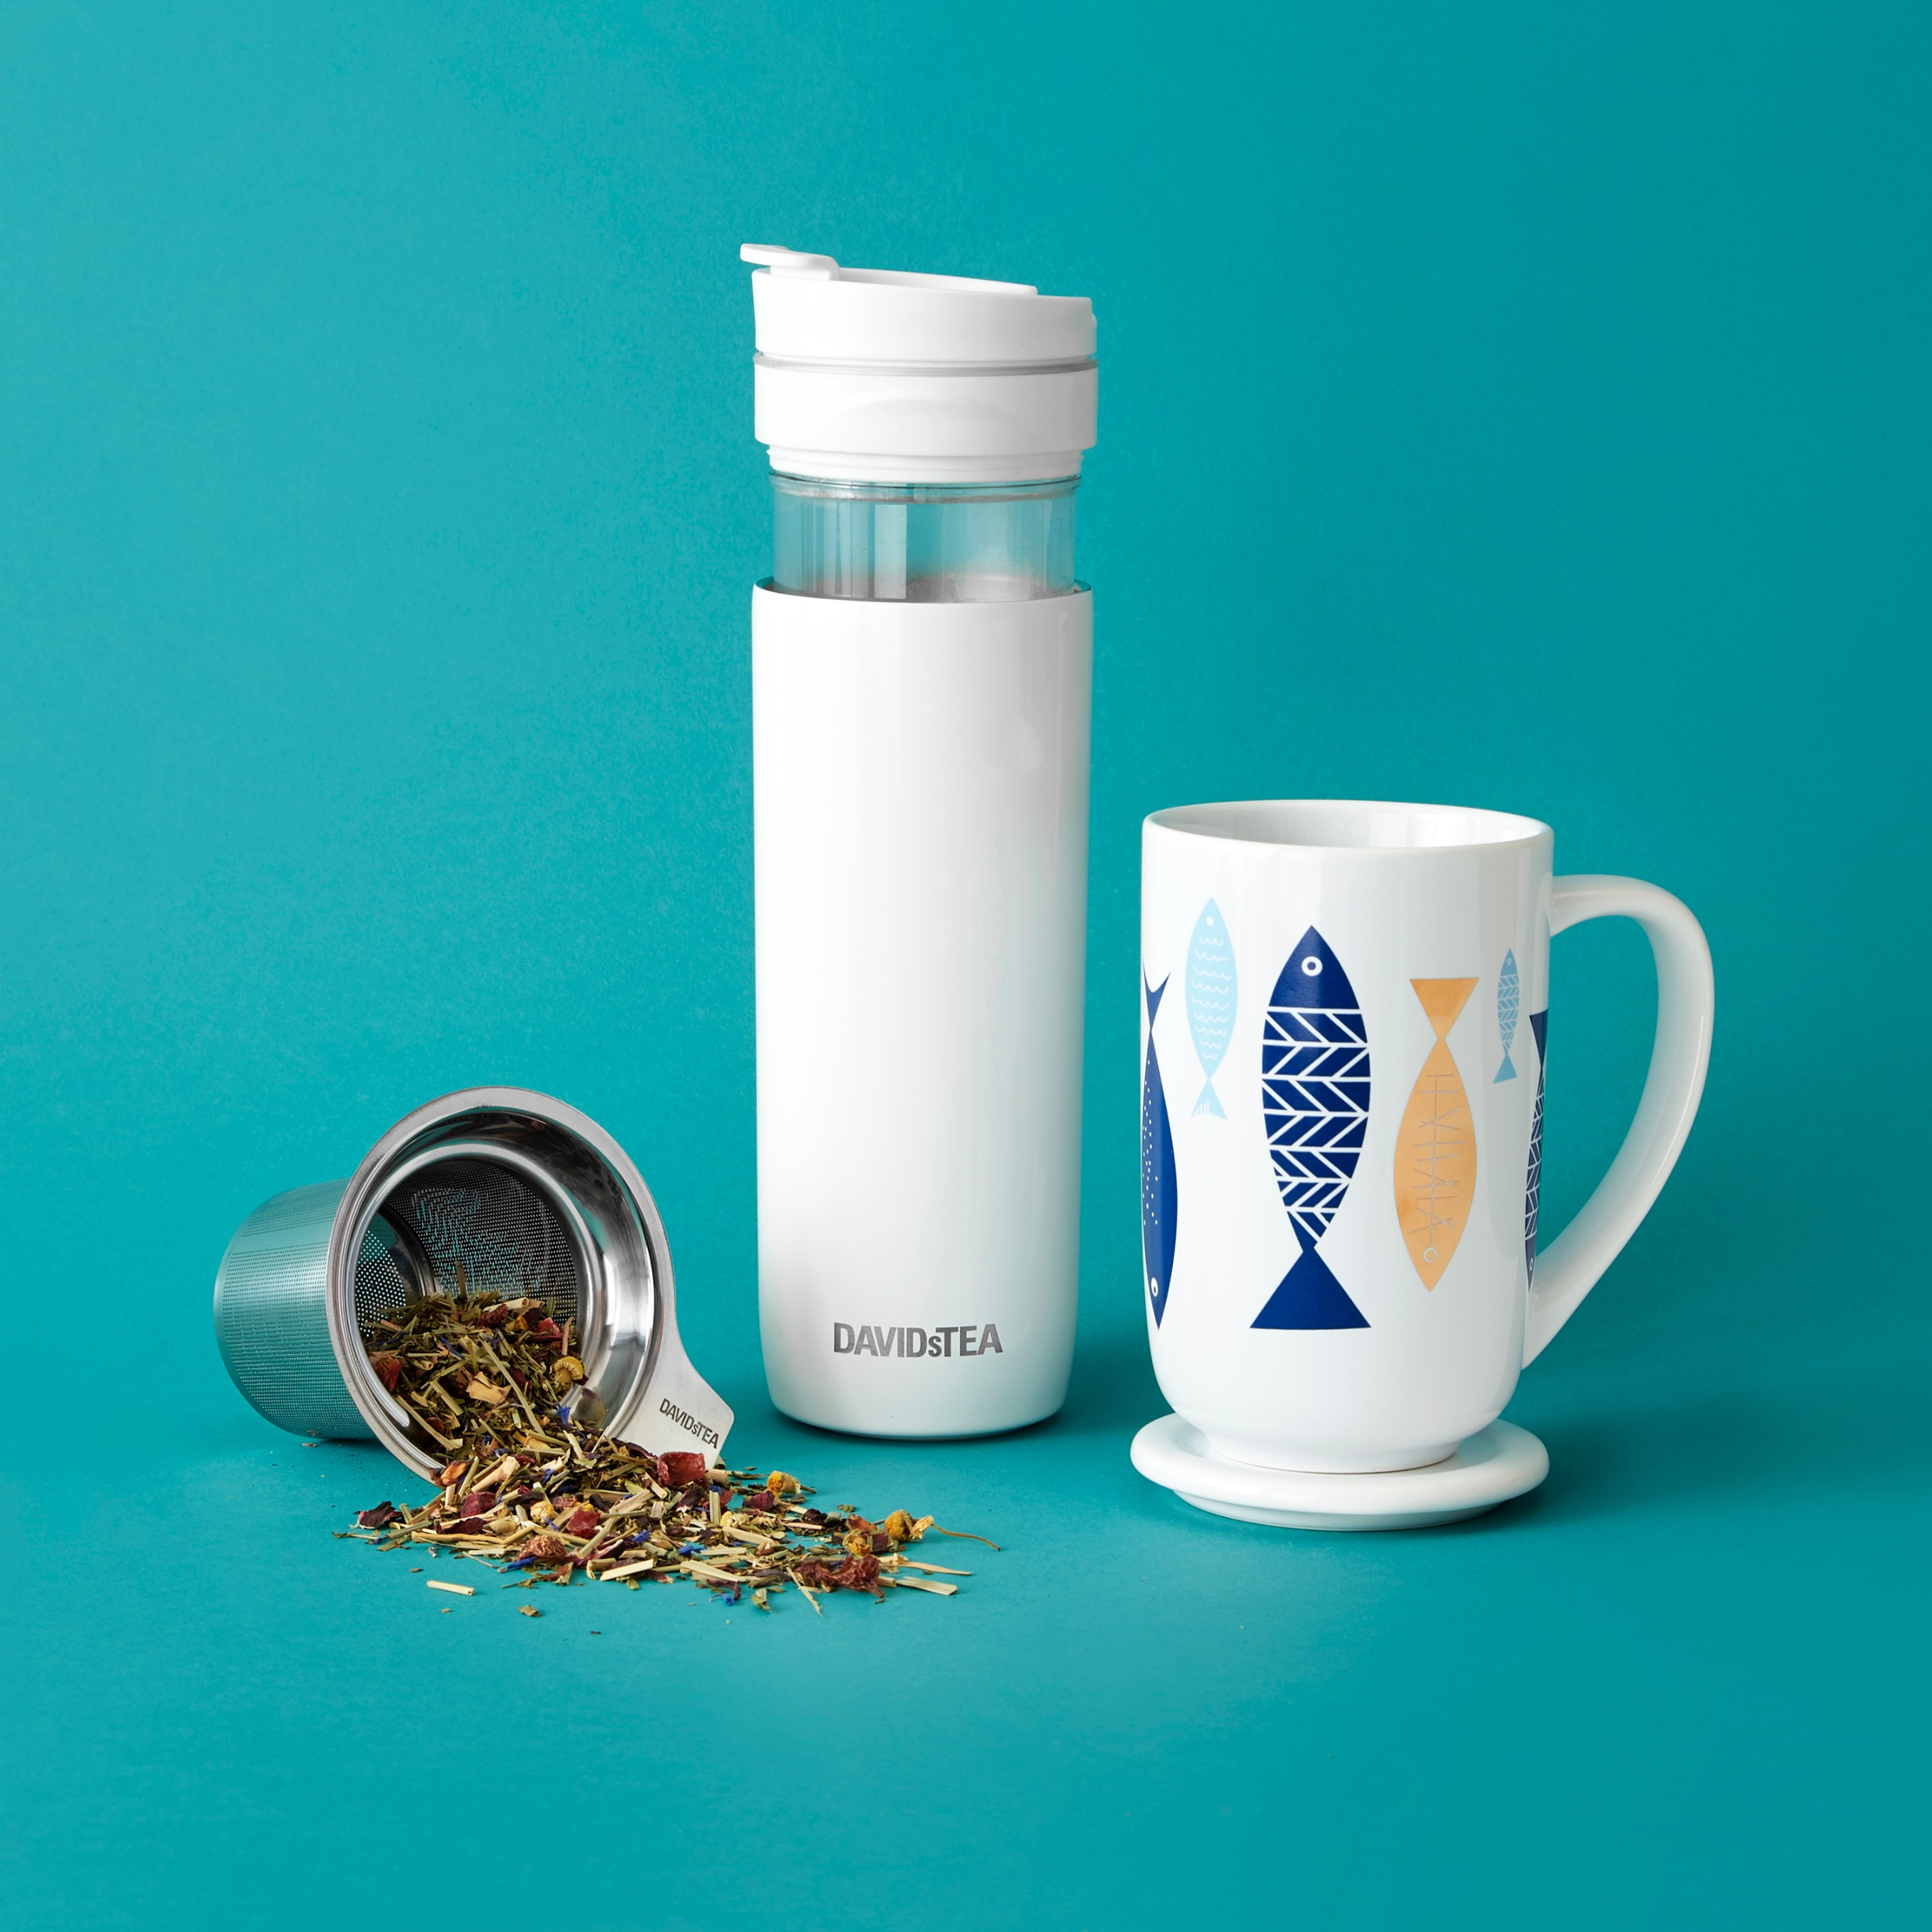 A metal infuser lies on its side, spilling over with loose leaf tea, while a white Tea Press & Fish Nordic Mug stand to the right.